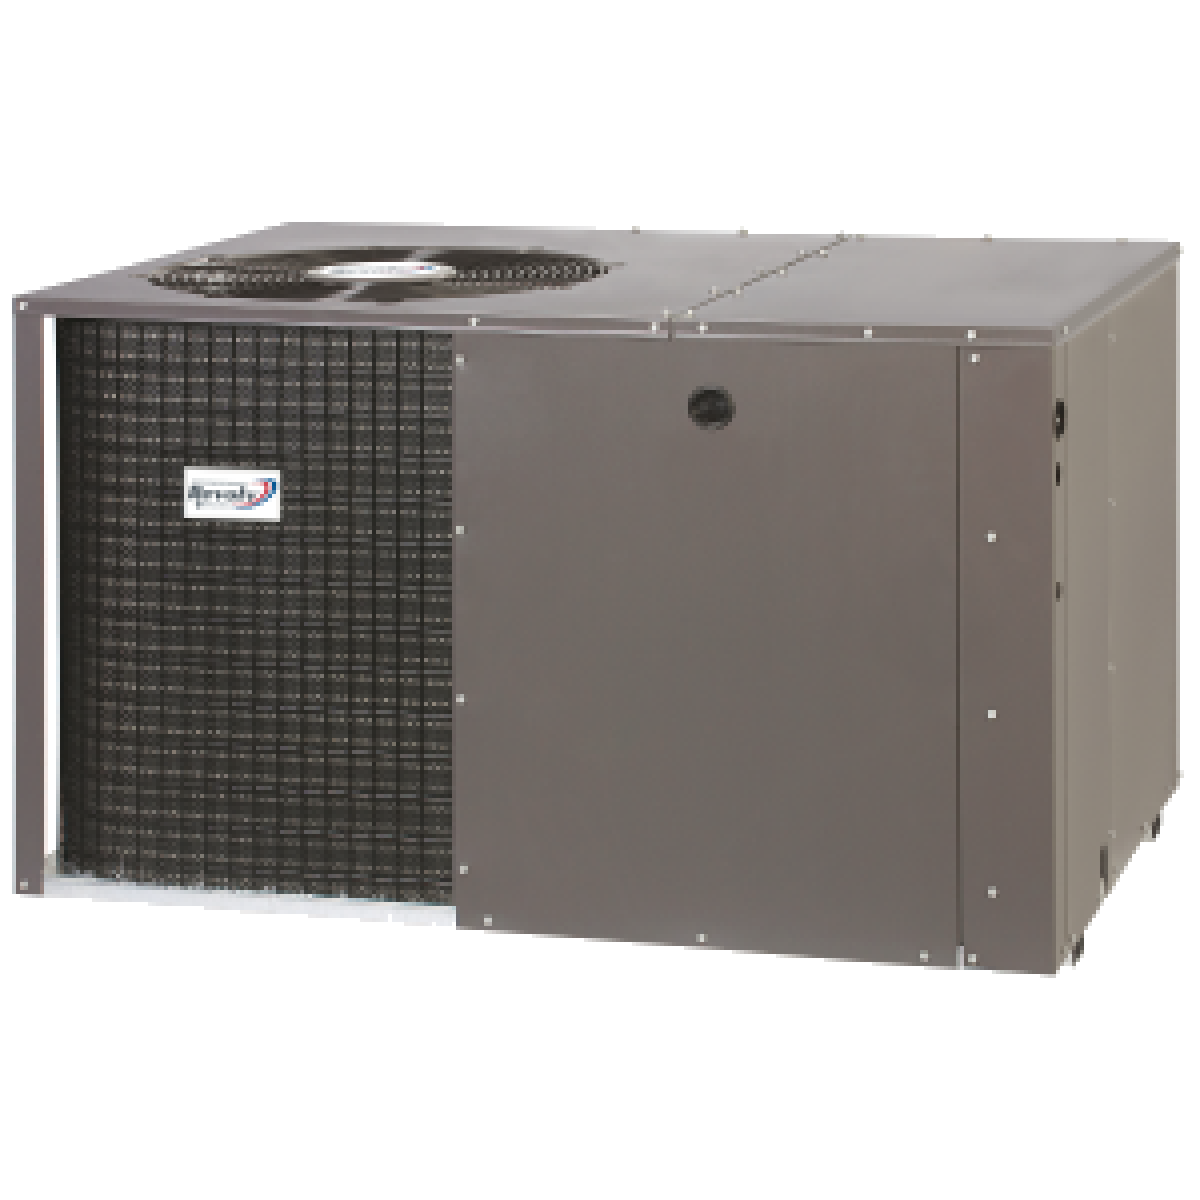 Ac Unit Prices >> Revolv 2.5 Ton 14 SEER Heat Pump Package Unit in 2.0 Ton - 3.0 Ton - Self Contained Package ...